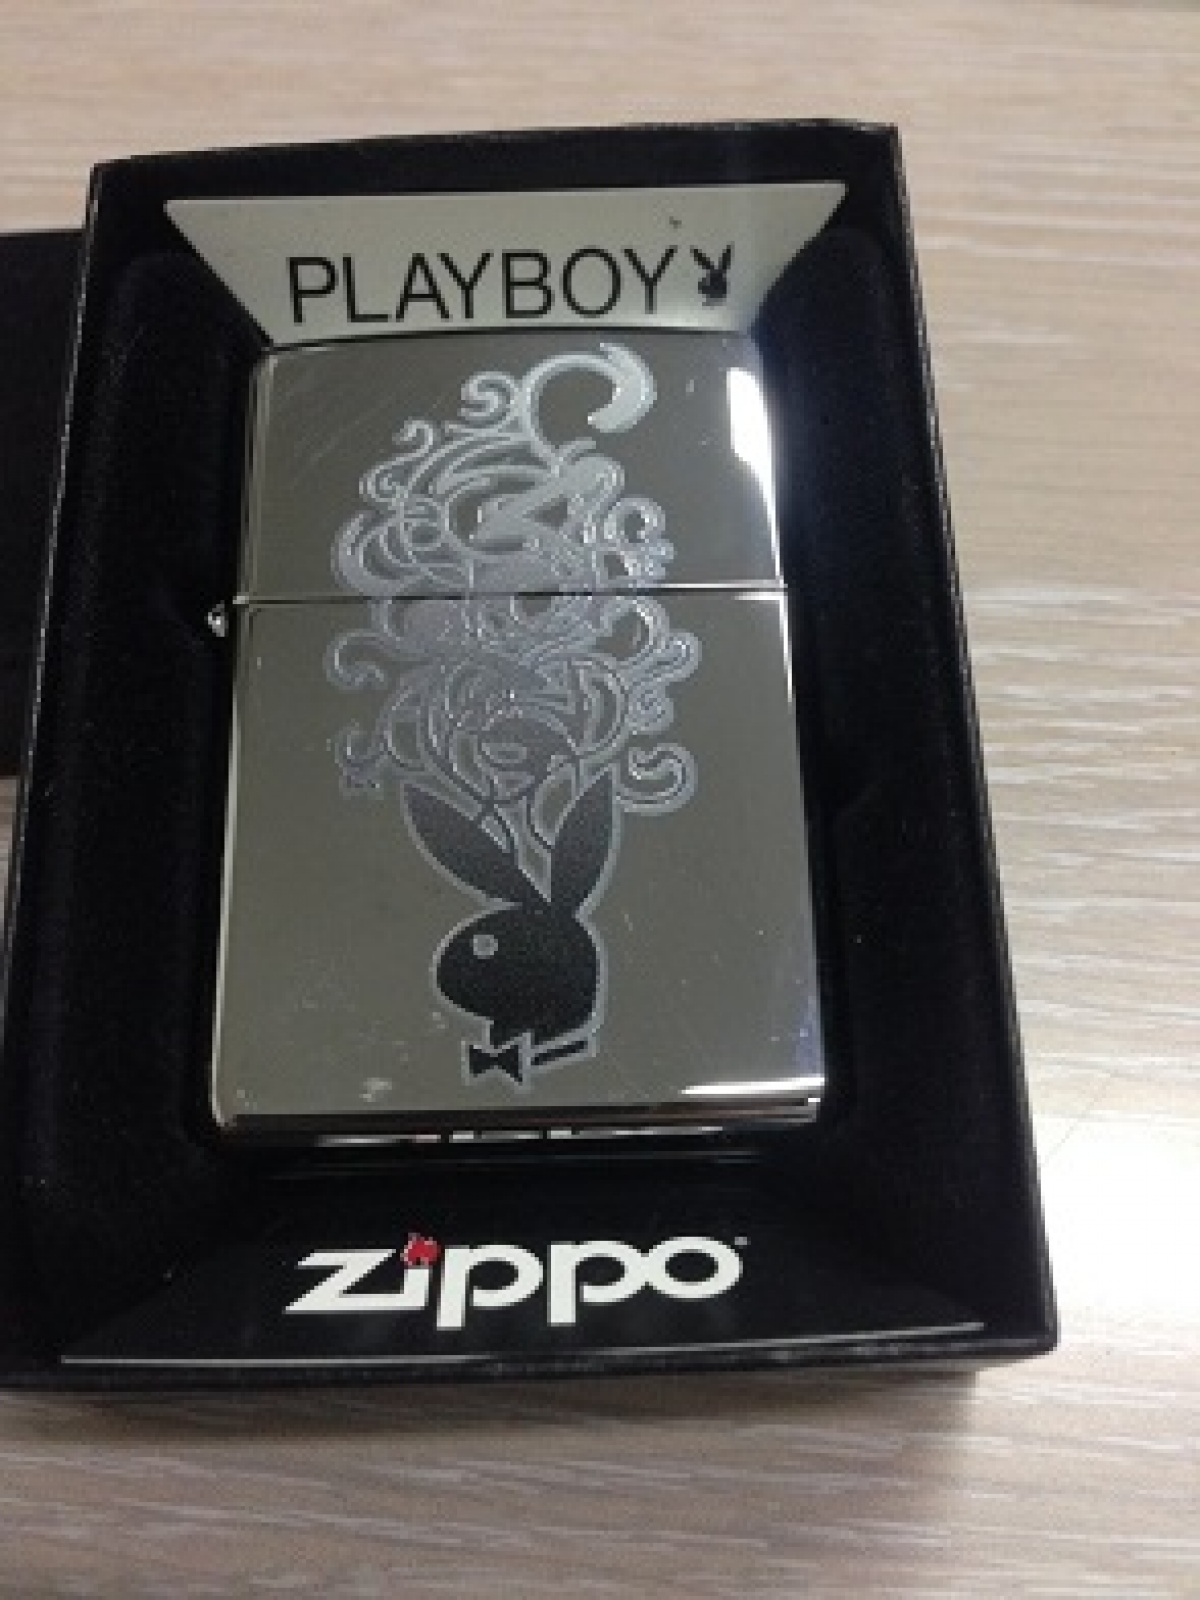 Zippo Pocket Lighter 2001960 250 Playboy